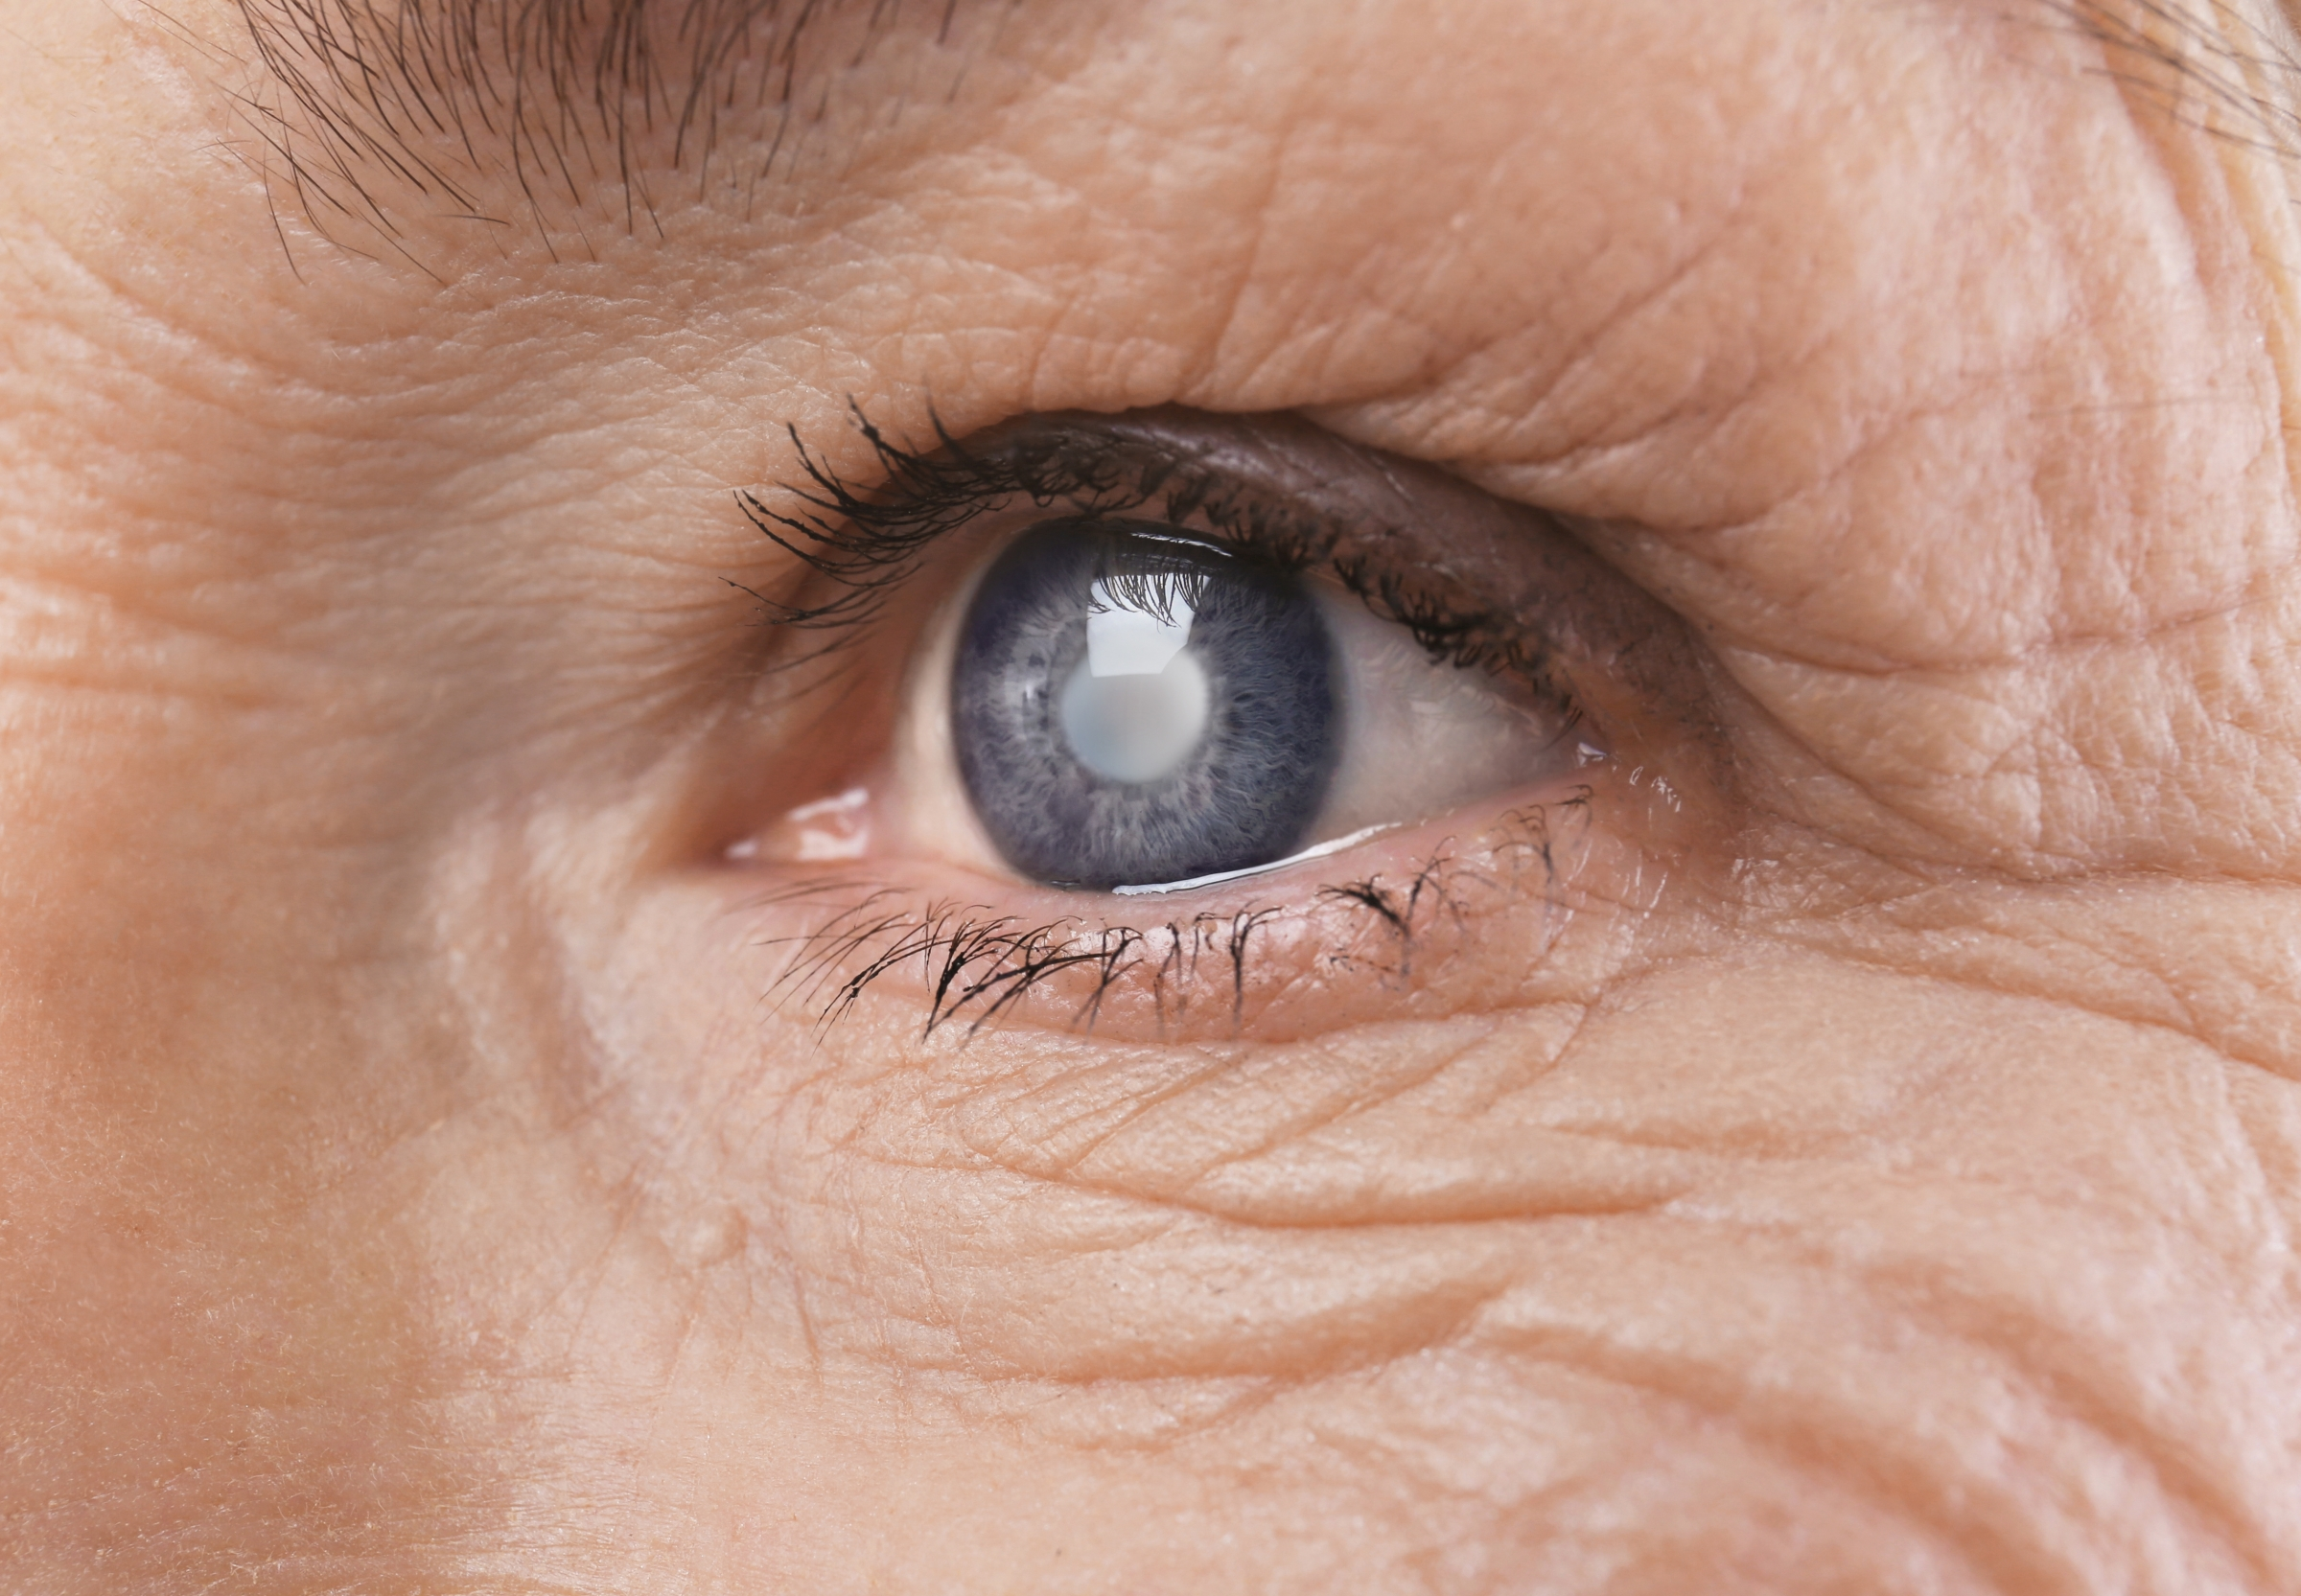 An Older Man with Cataract